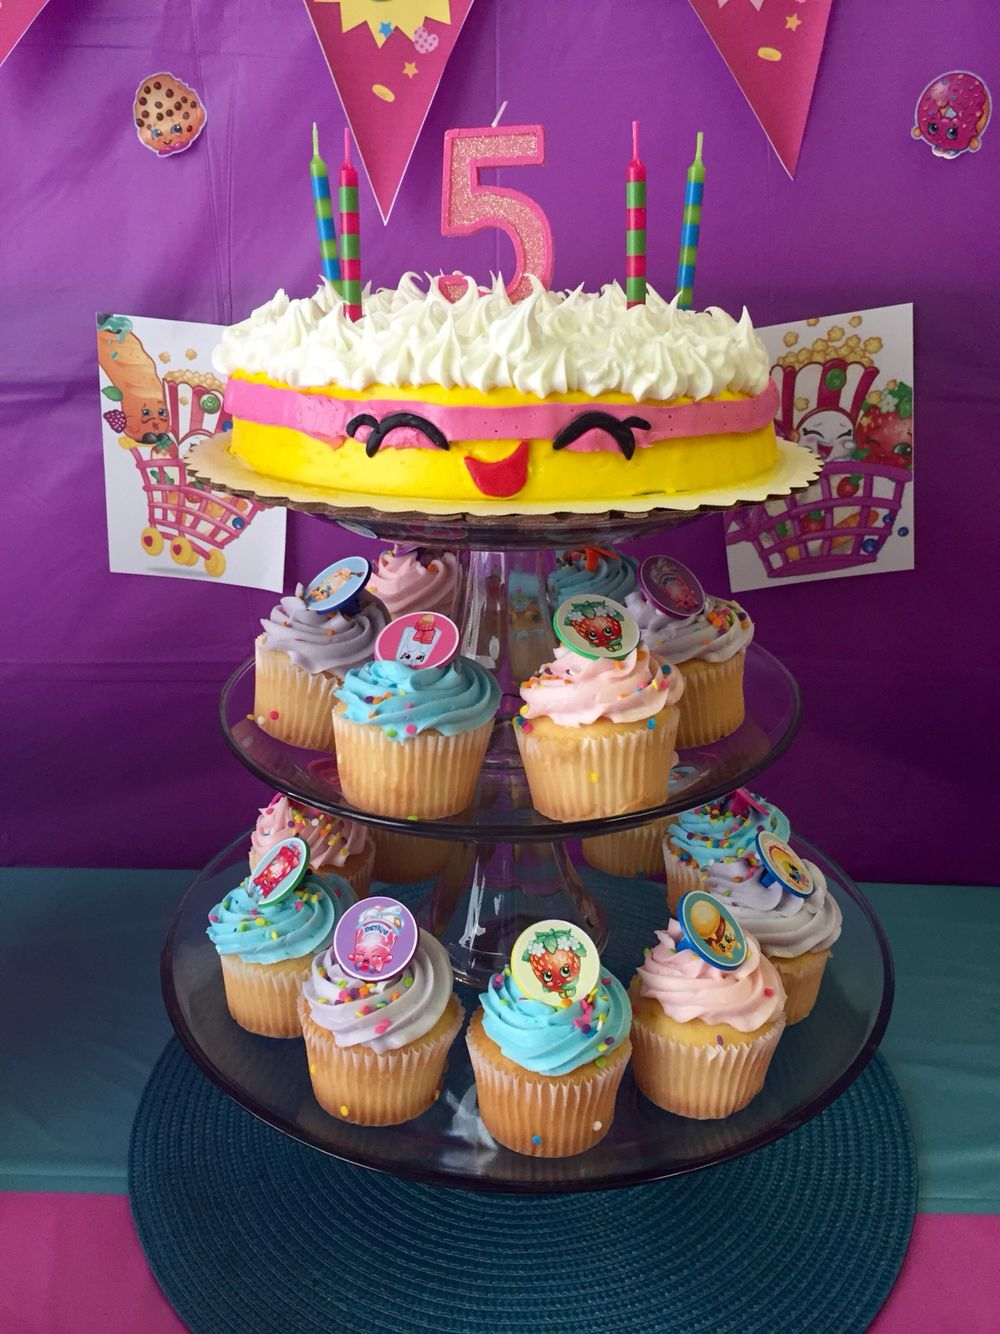 Shopkins Wishes Cake And Cupcakes With Rings Via EBay